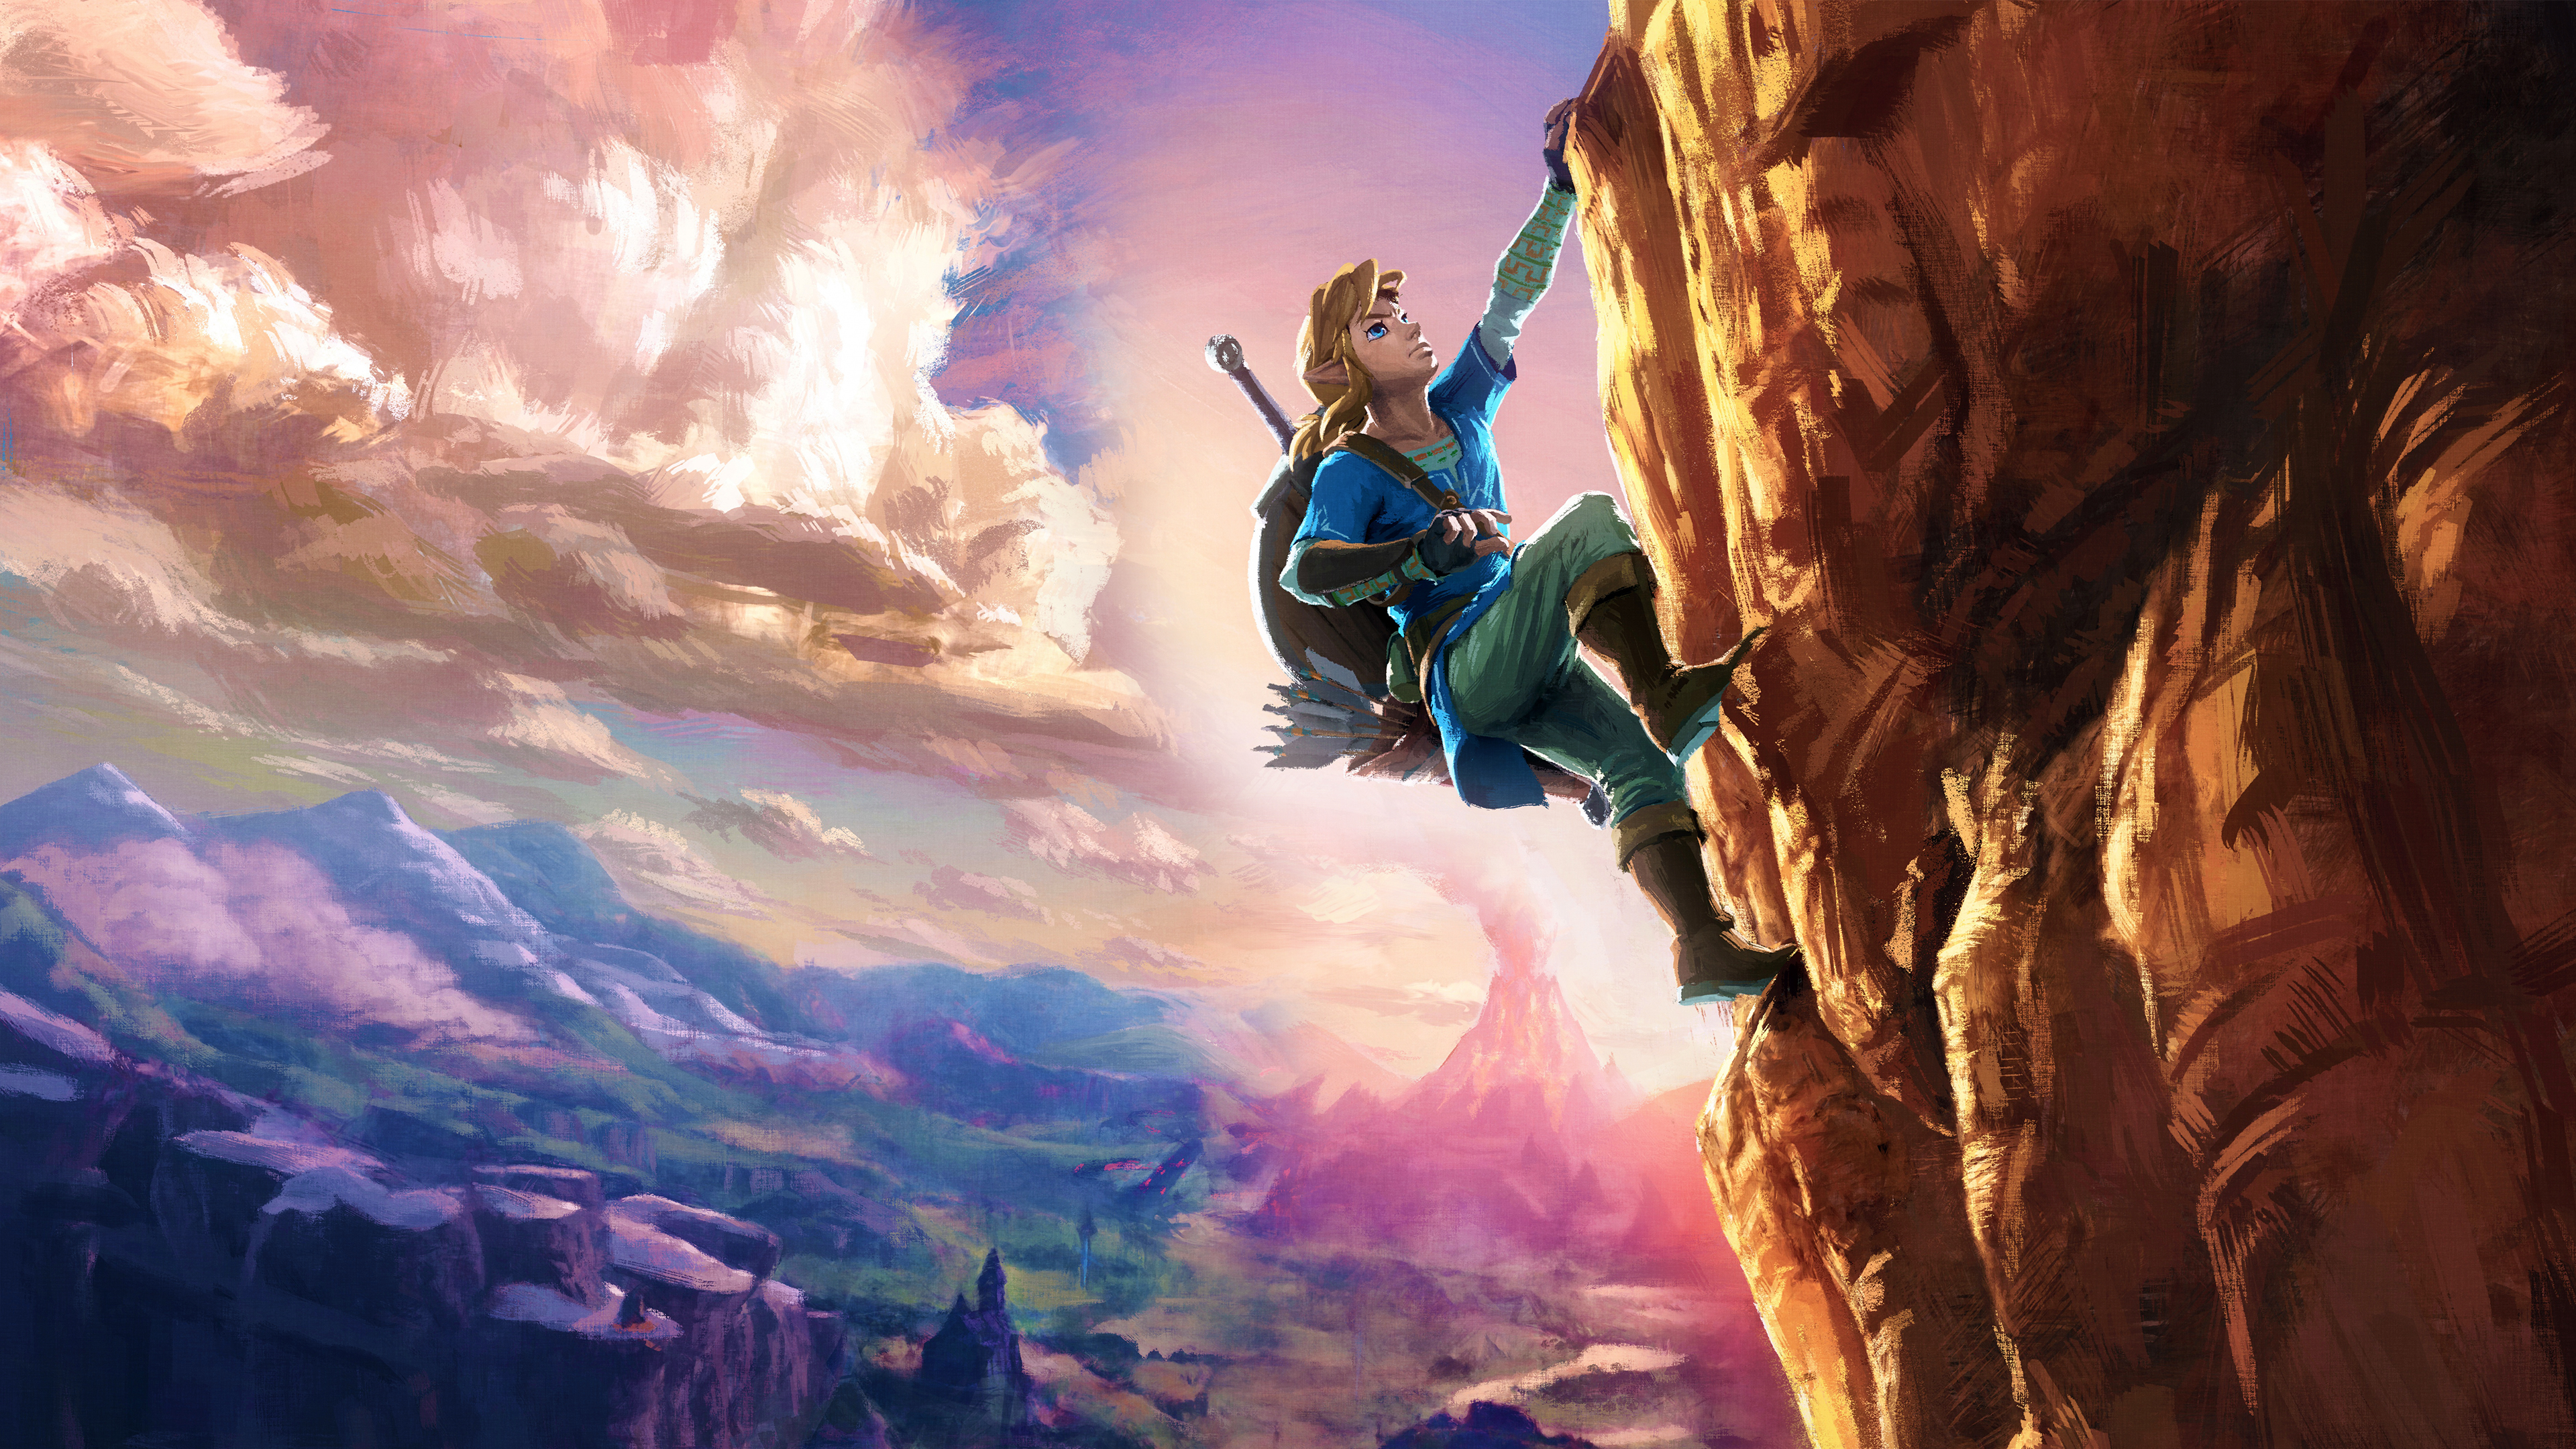 4k The Legend Of Zelda Breath Of The Wild Wallpaper Hd